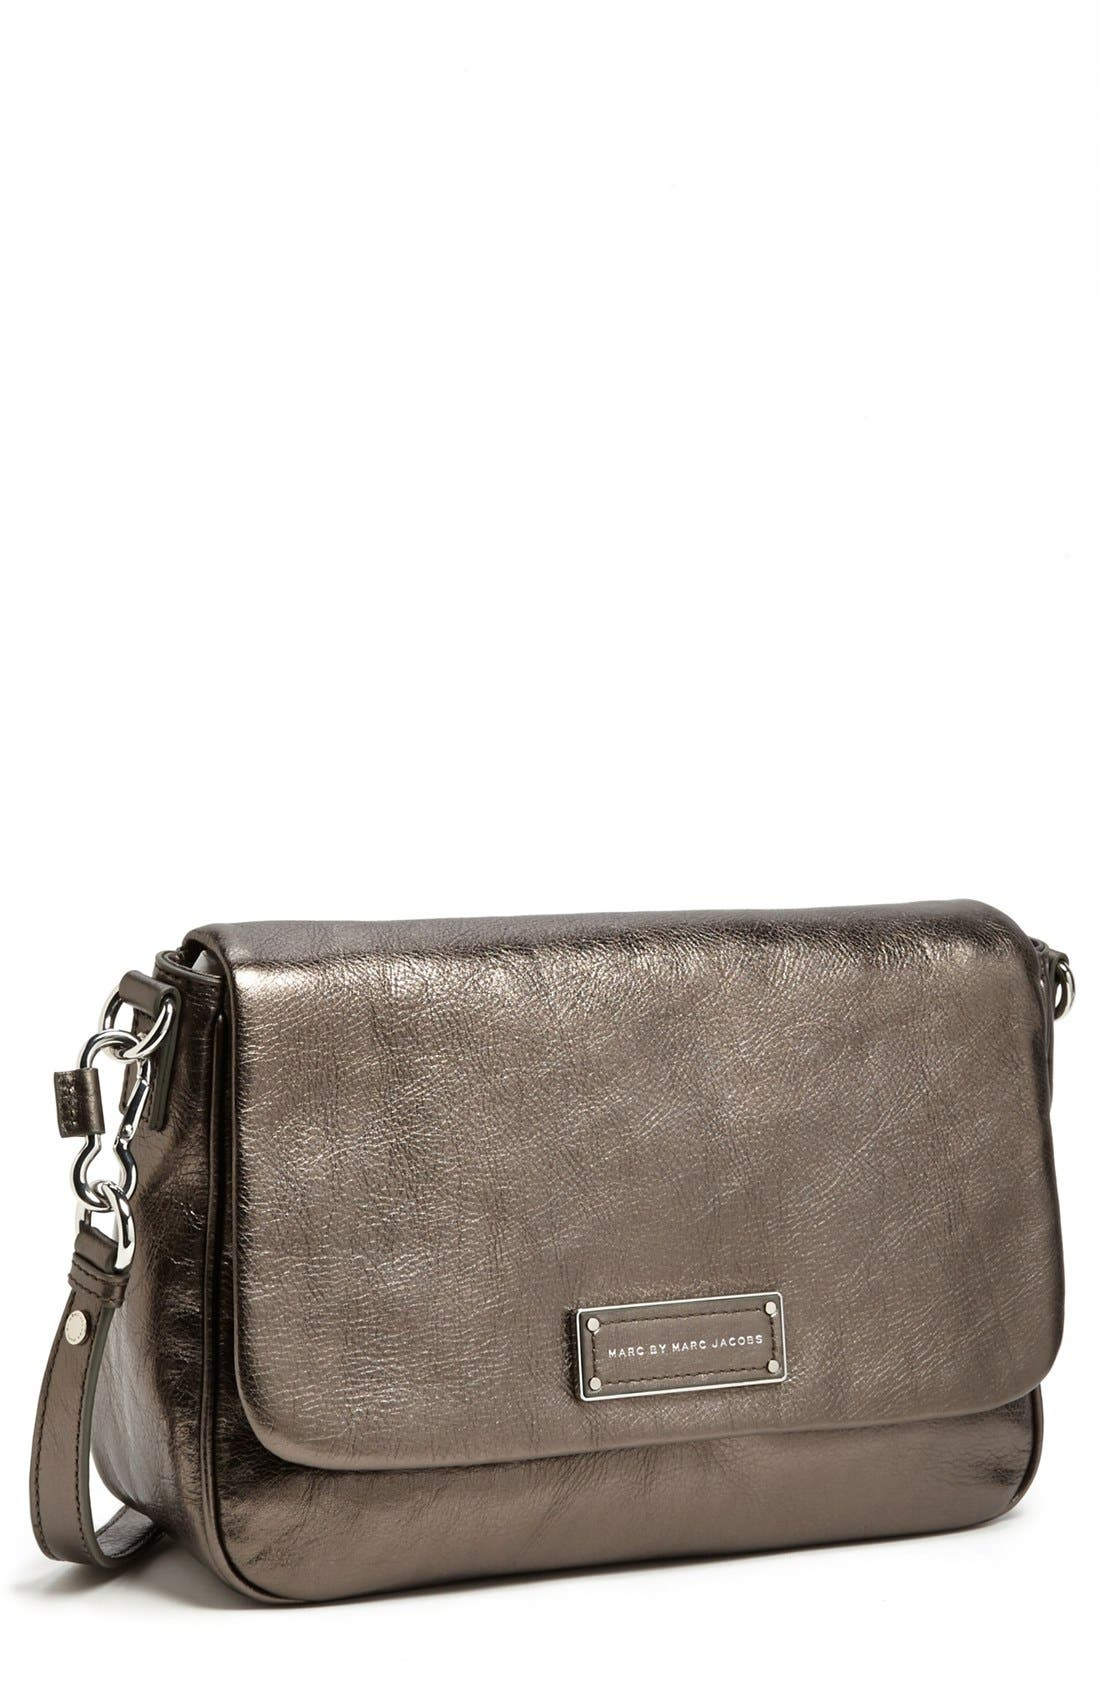 Main Image - MARC BY MARC JACOBS 'Too Hot to Handle' Metallic Leather Crossbody Bag